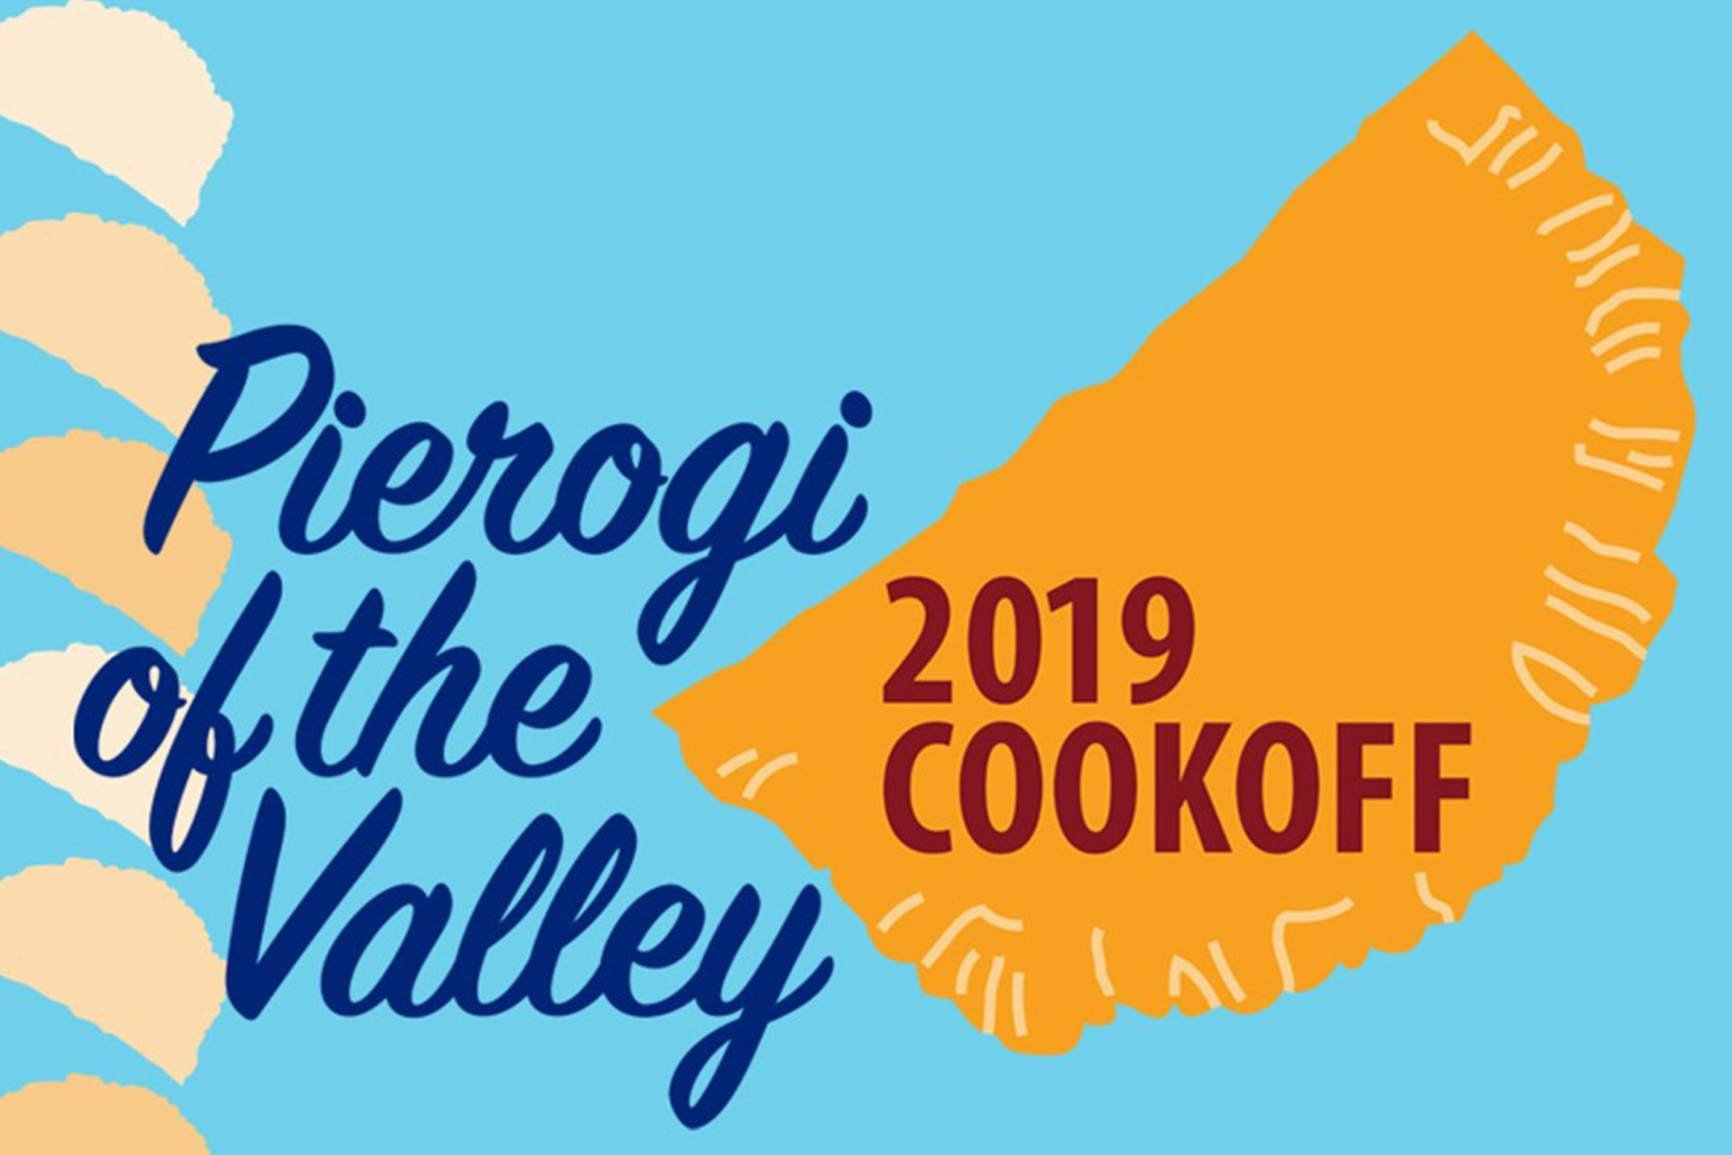 Pierogi of the Valley Cookoff